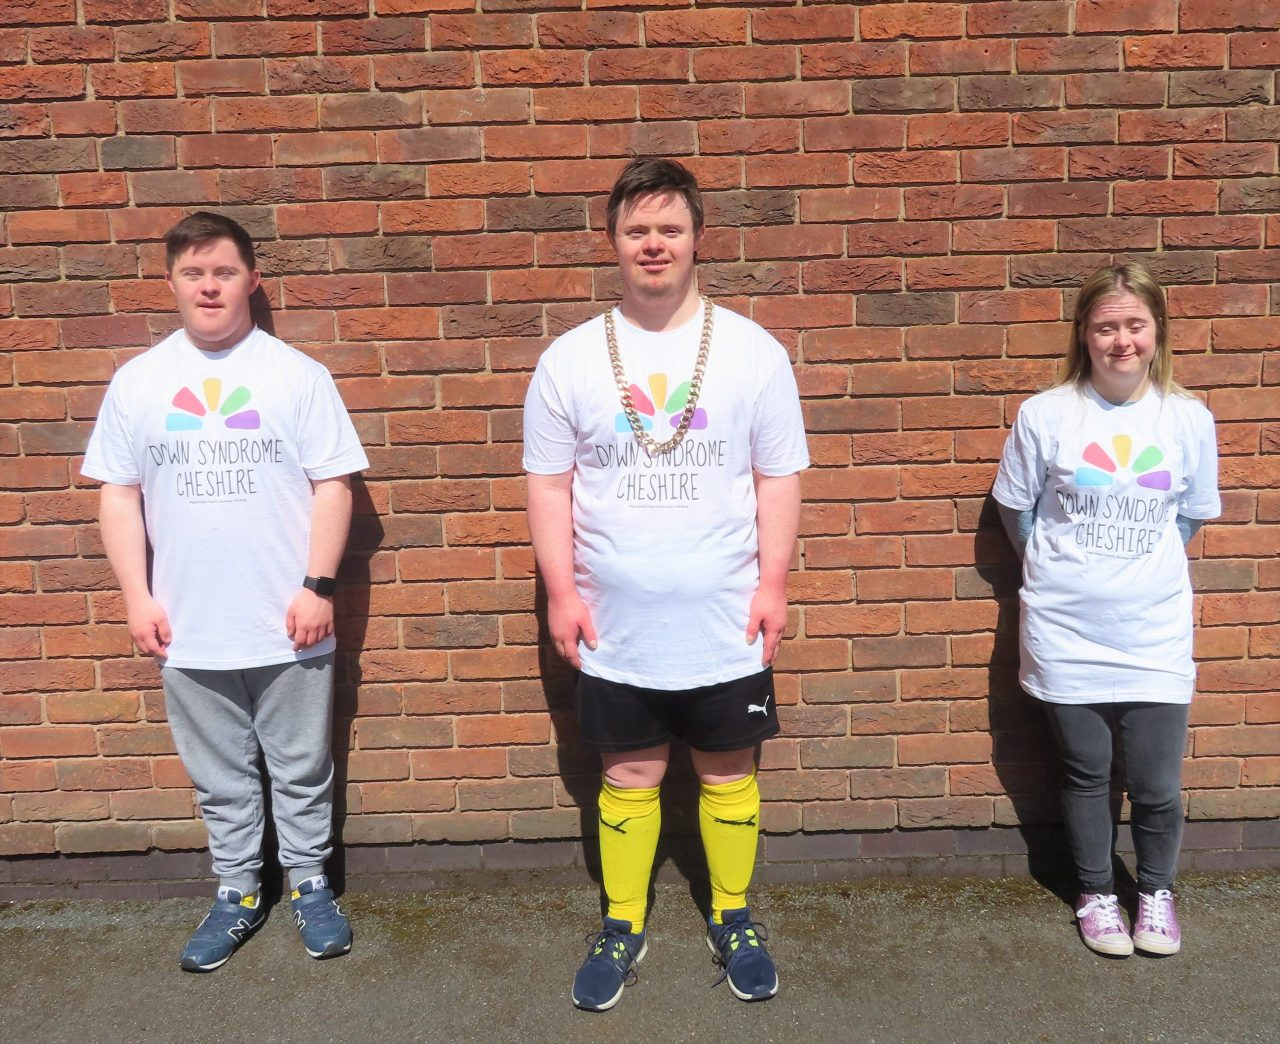 Talented team with Down's Syndrome create new look for charity